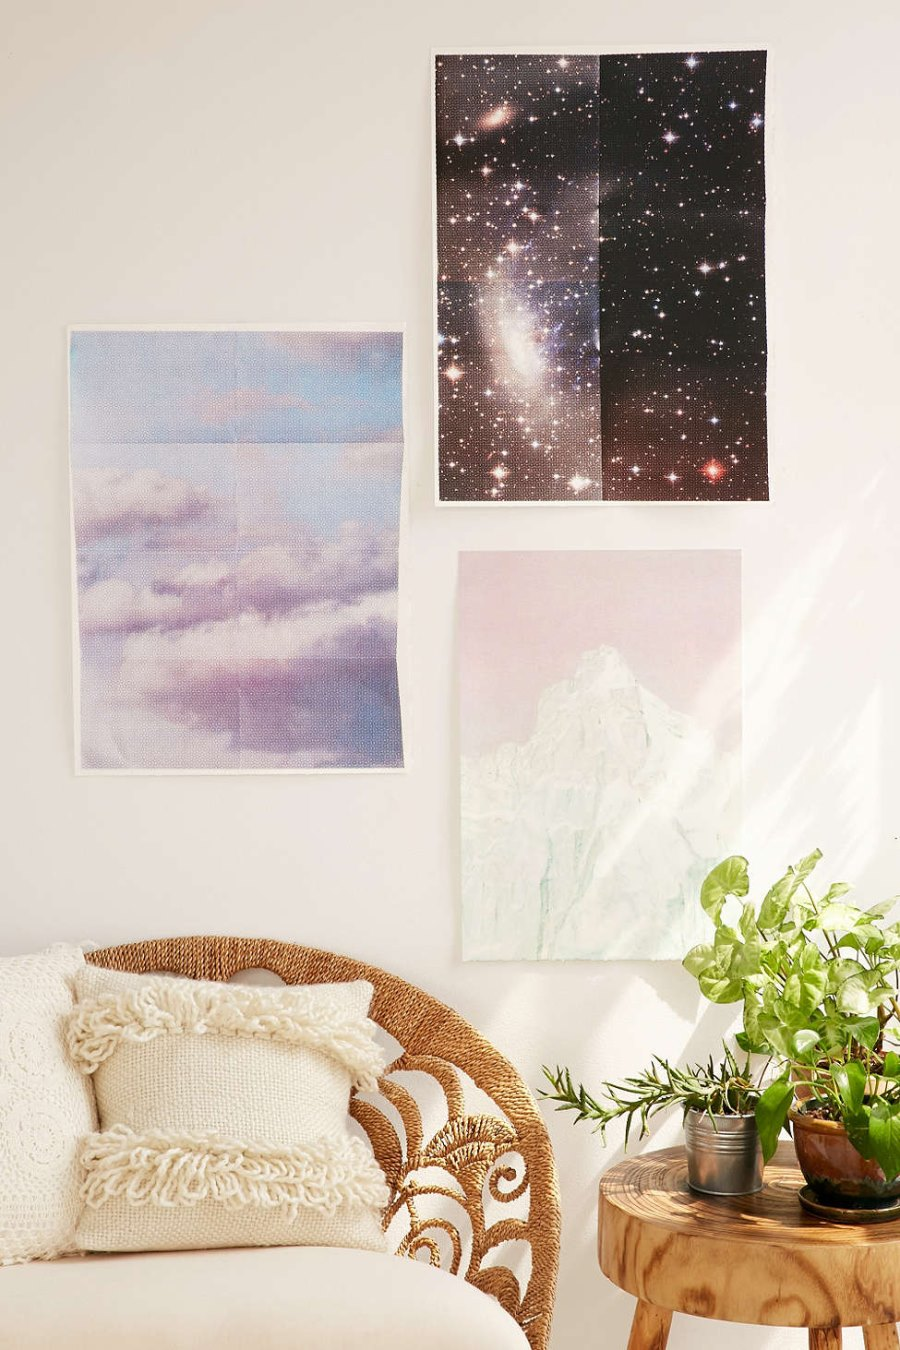 Cosmos art print from Urban Outfitters